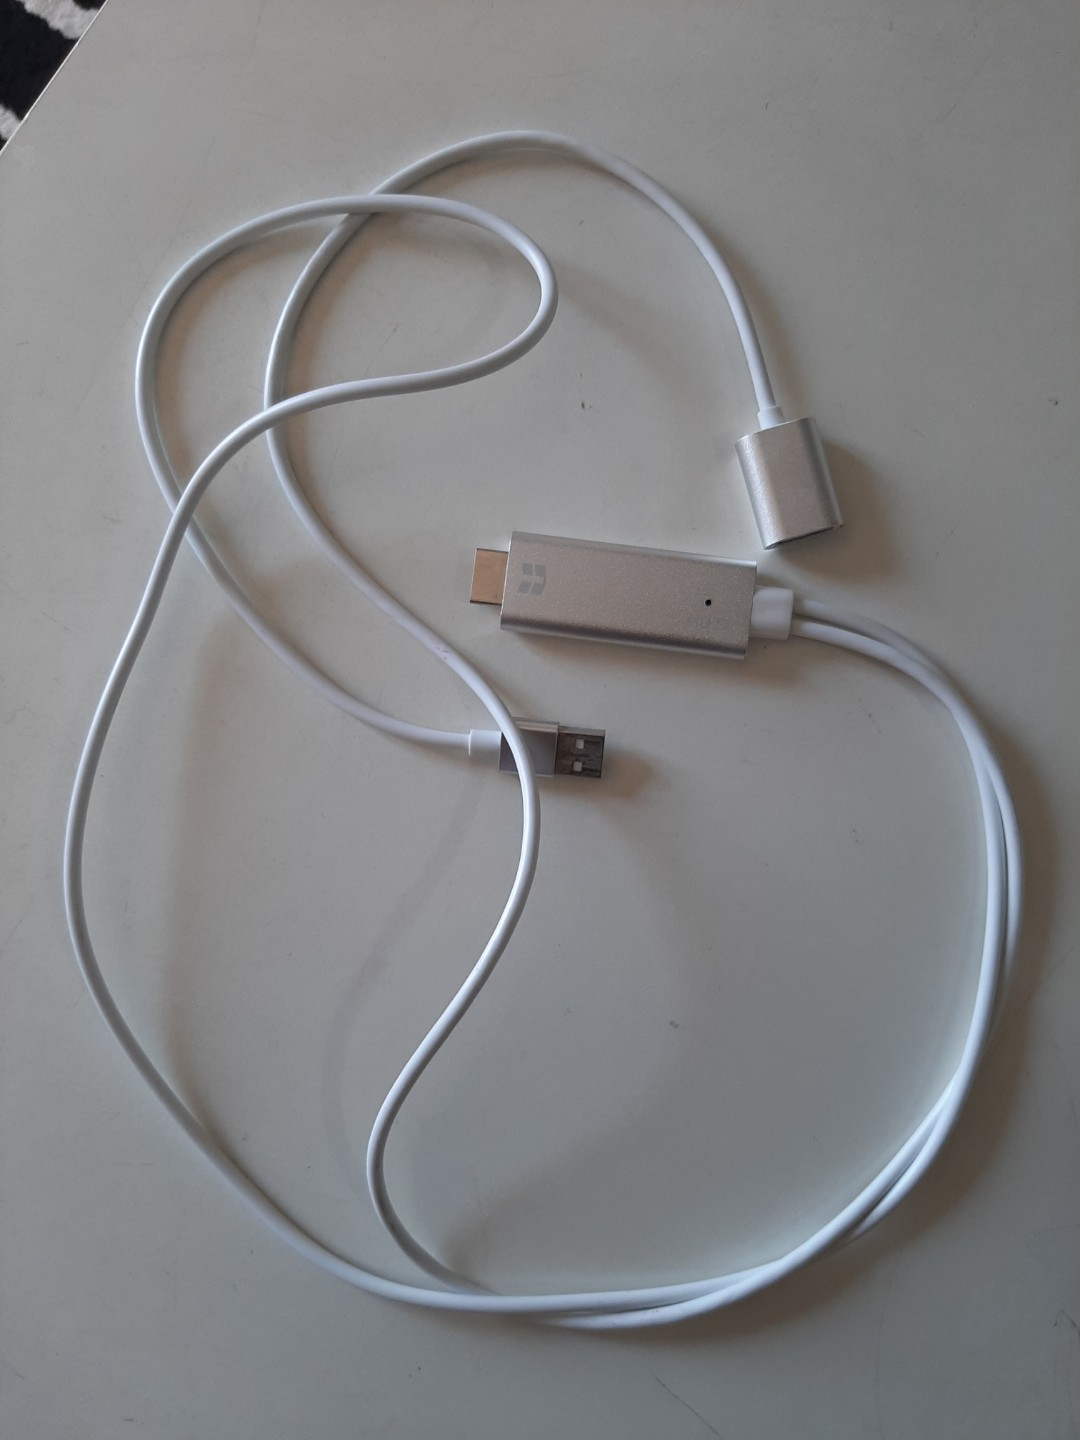 MHL cable (connect phone to tv)